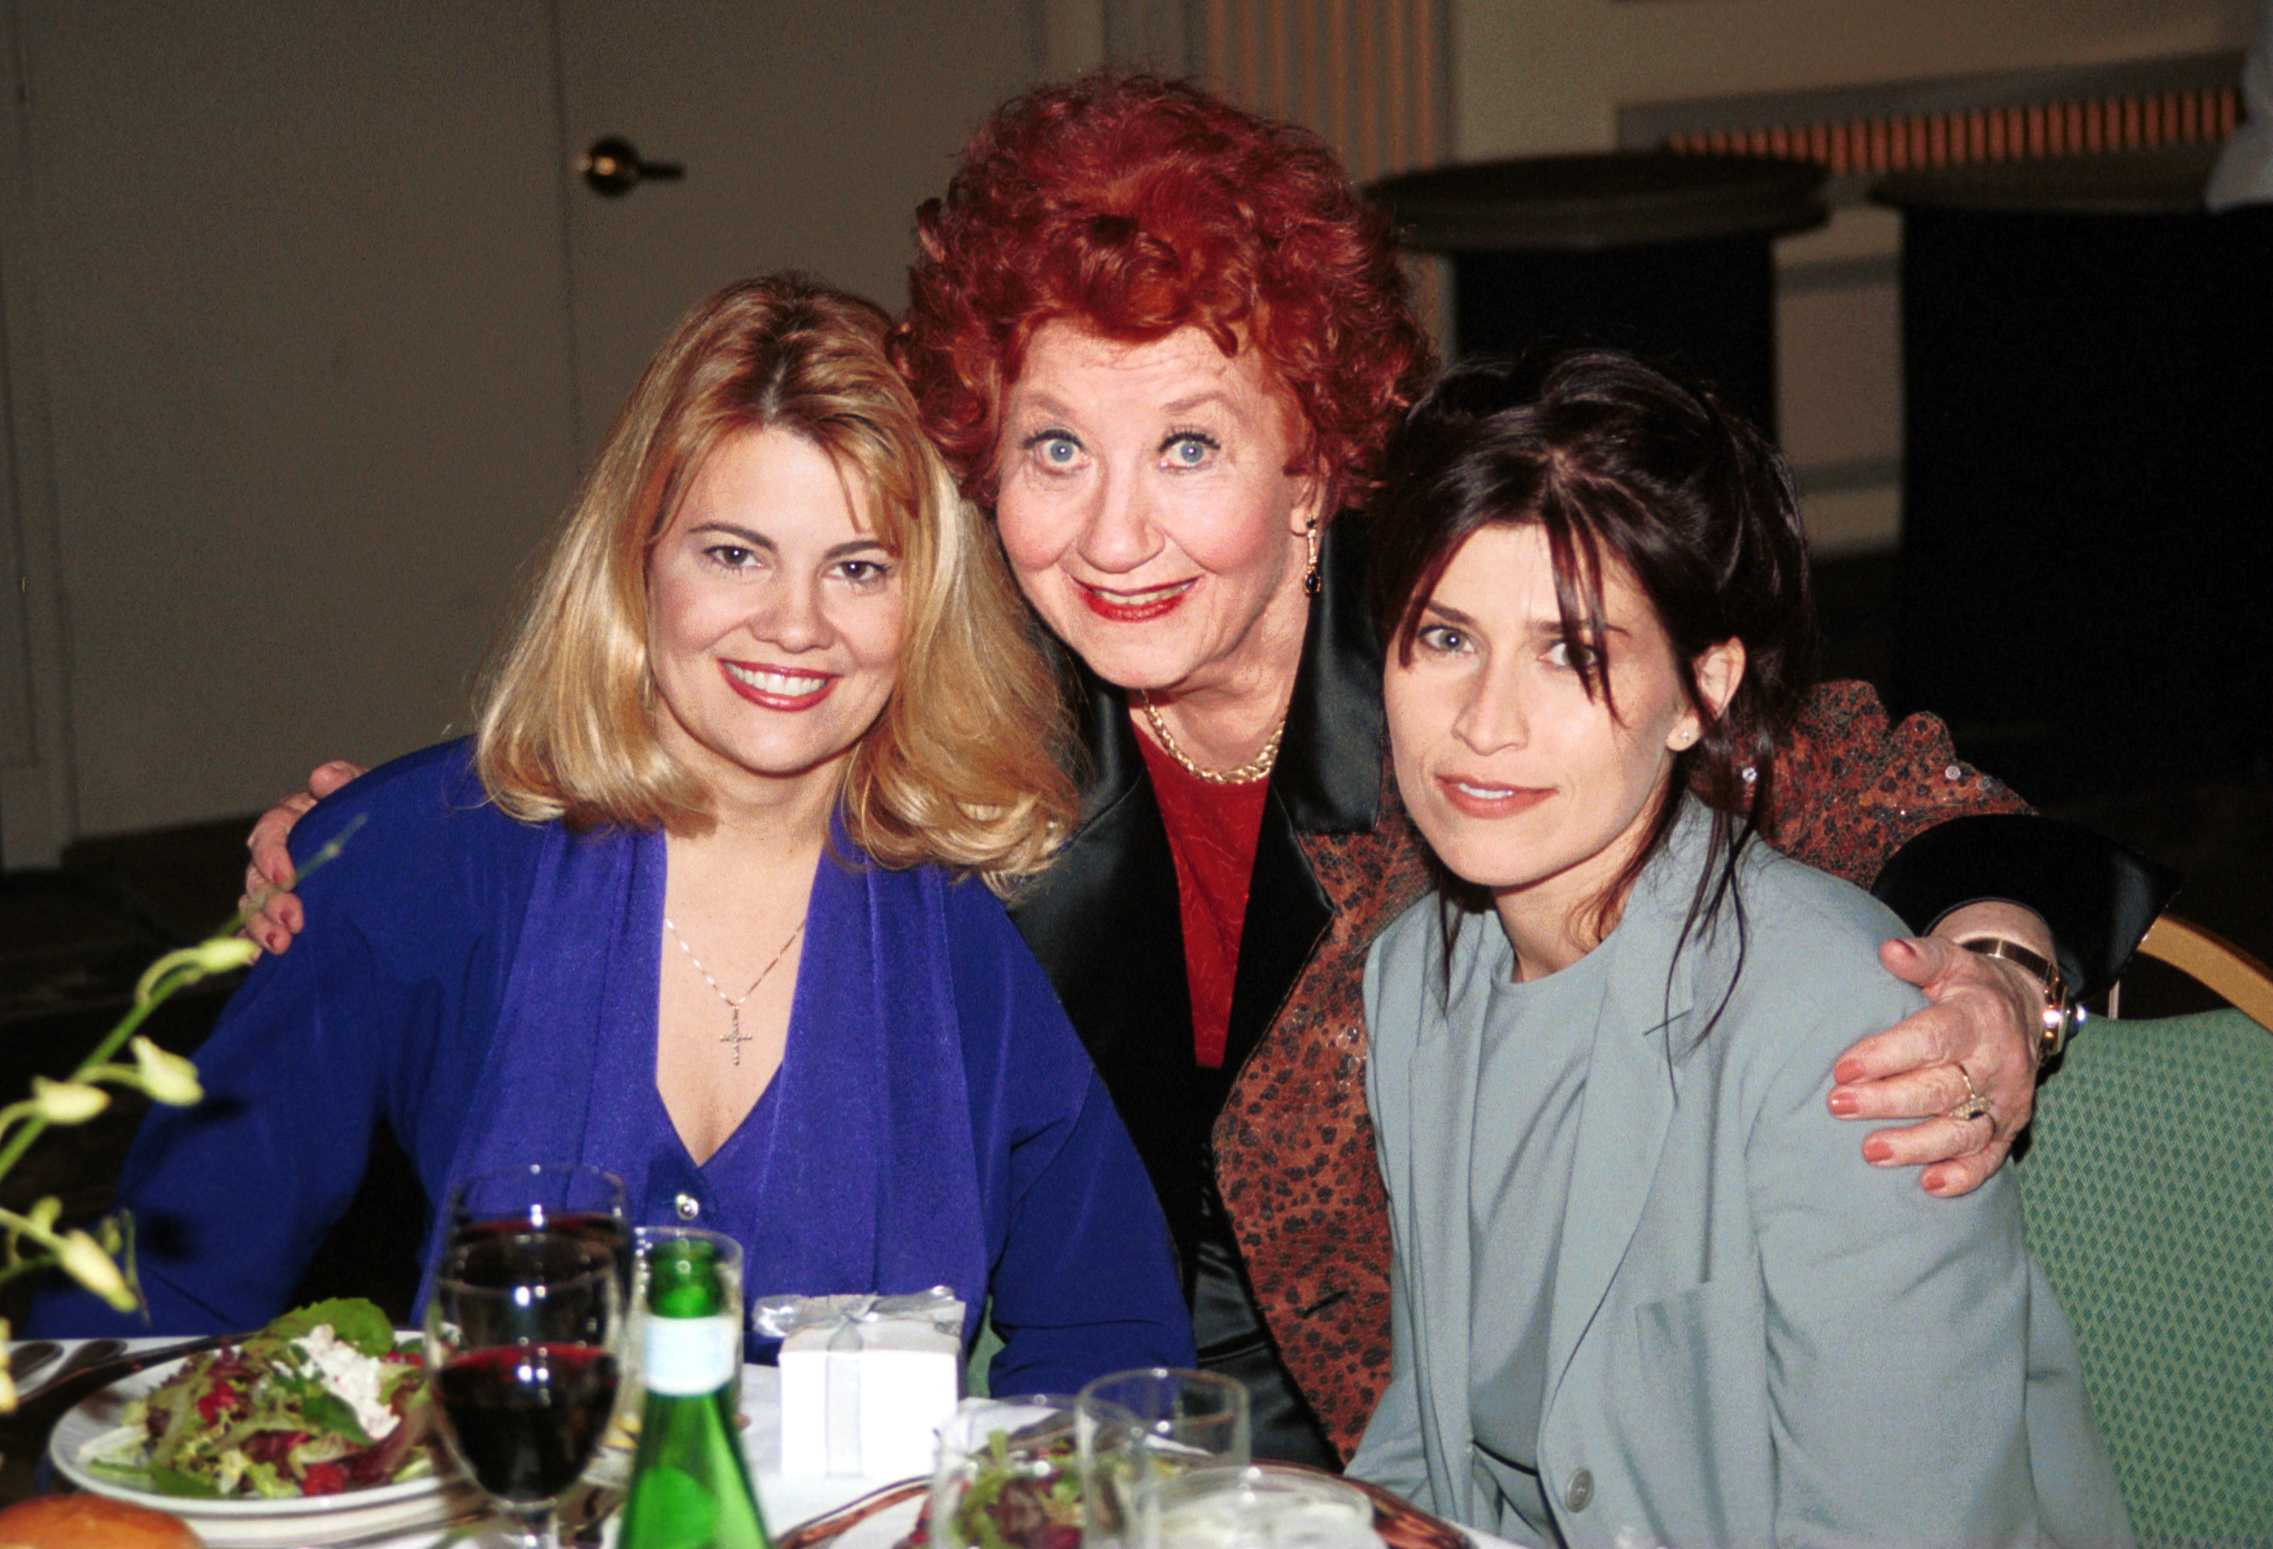 It was 'Facts of Life' time again when actresses Lisa Welchel, left, Charlotte Rae and Nancy McKeon reunited during the Third Annual Friends of CLARE Foundation Tribute Dinner to honor Charlotte Rae. The CLARE Foundation has been helping individuals, their families and loved ones gain sobriety and build healthy and productive lives in Los Angeles for thirty years. The event was held November 16, 2000 at the Fairmont Miramar Hotel in Santa Monica, CA.